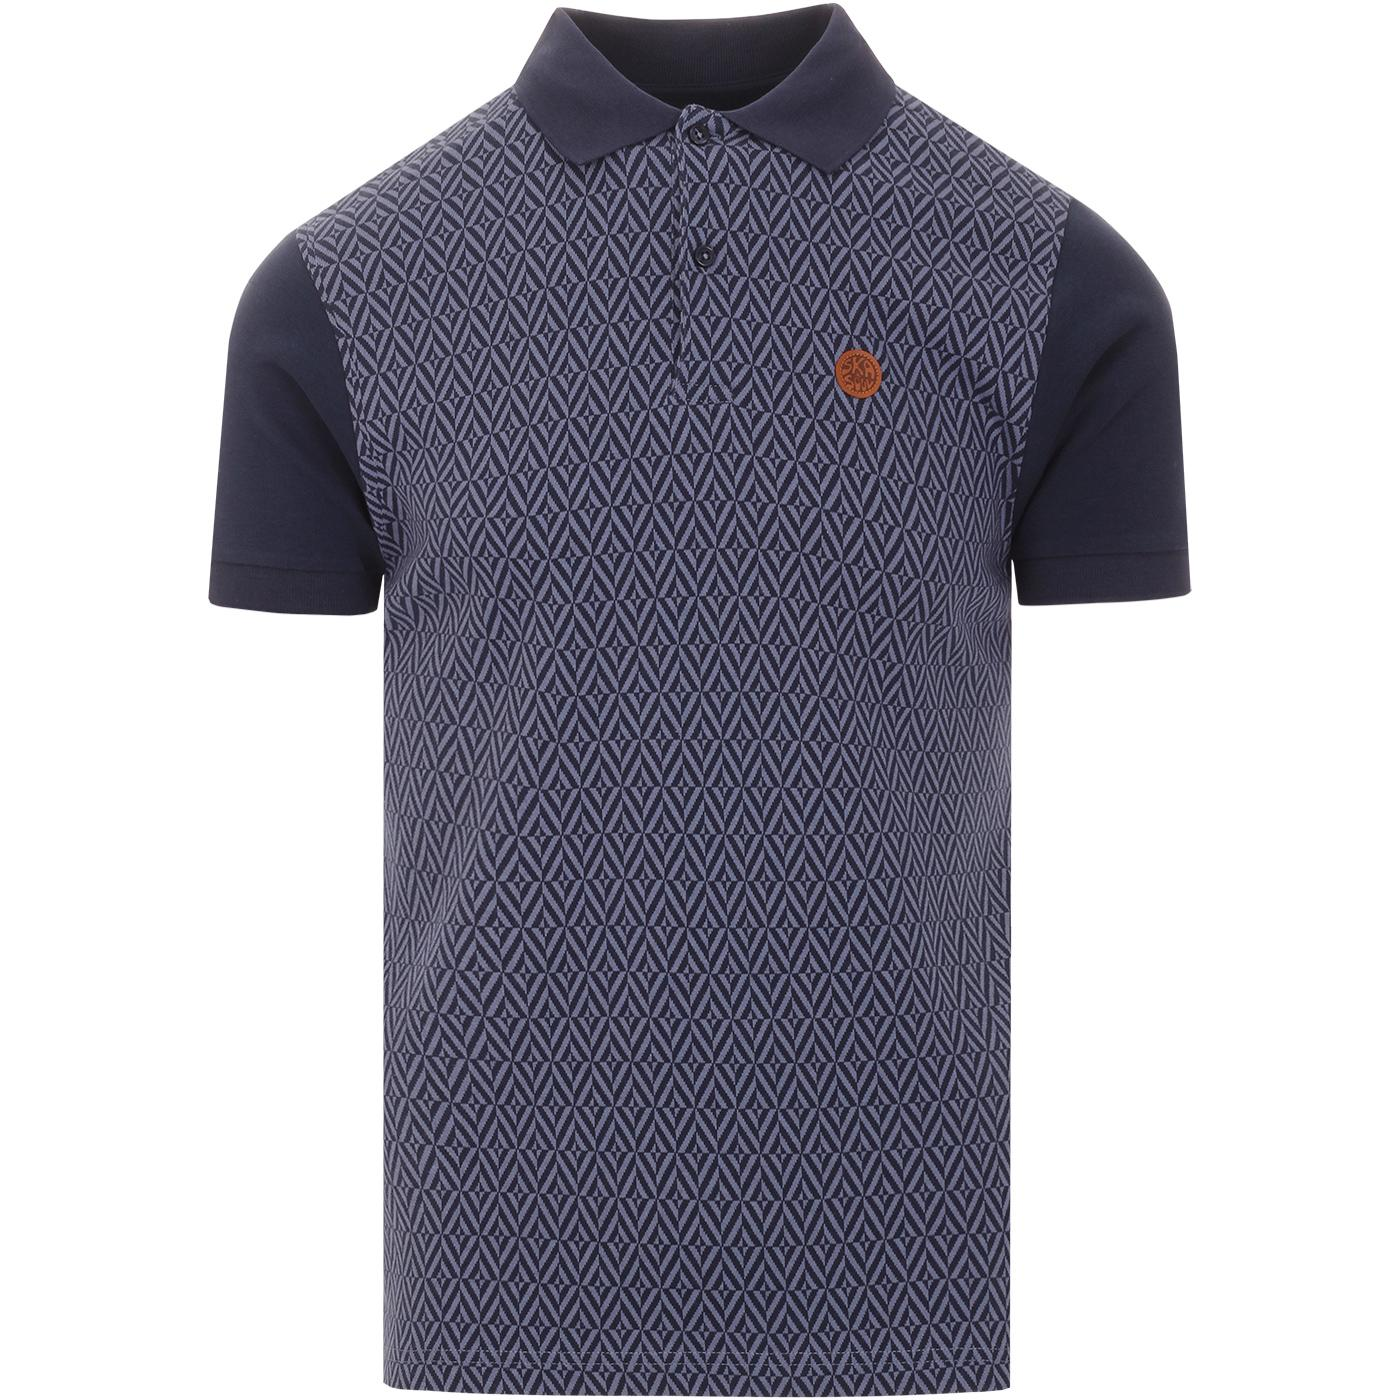 SKA & SOUL 60s Mod Herringbone Check Polo Top (N)